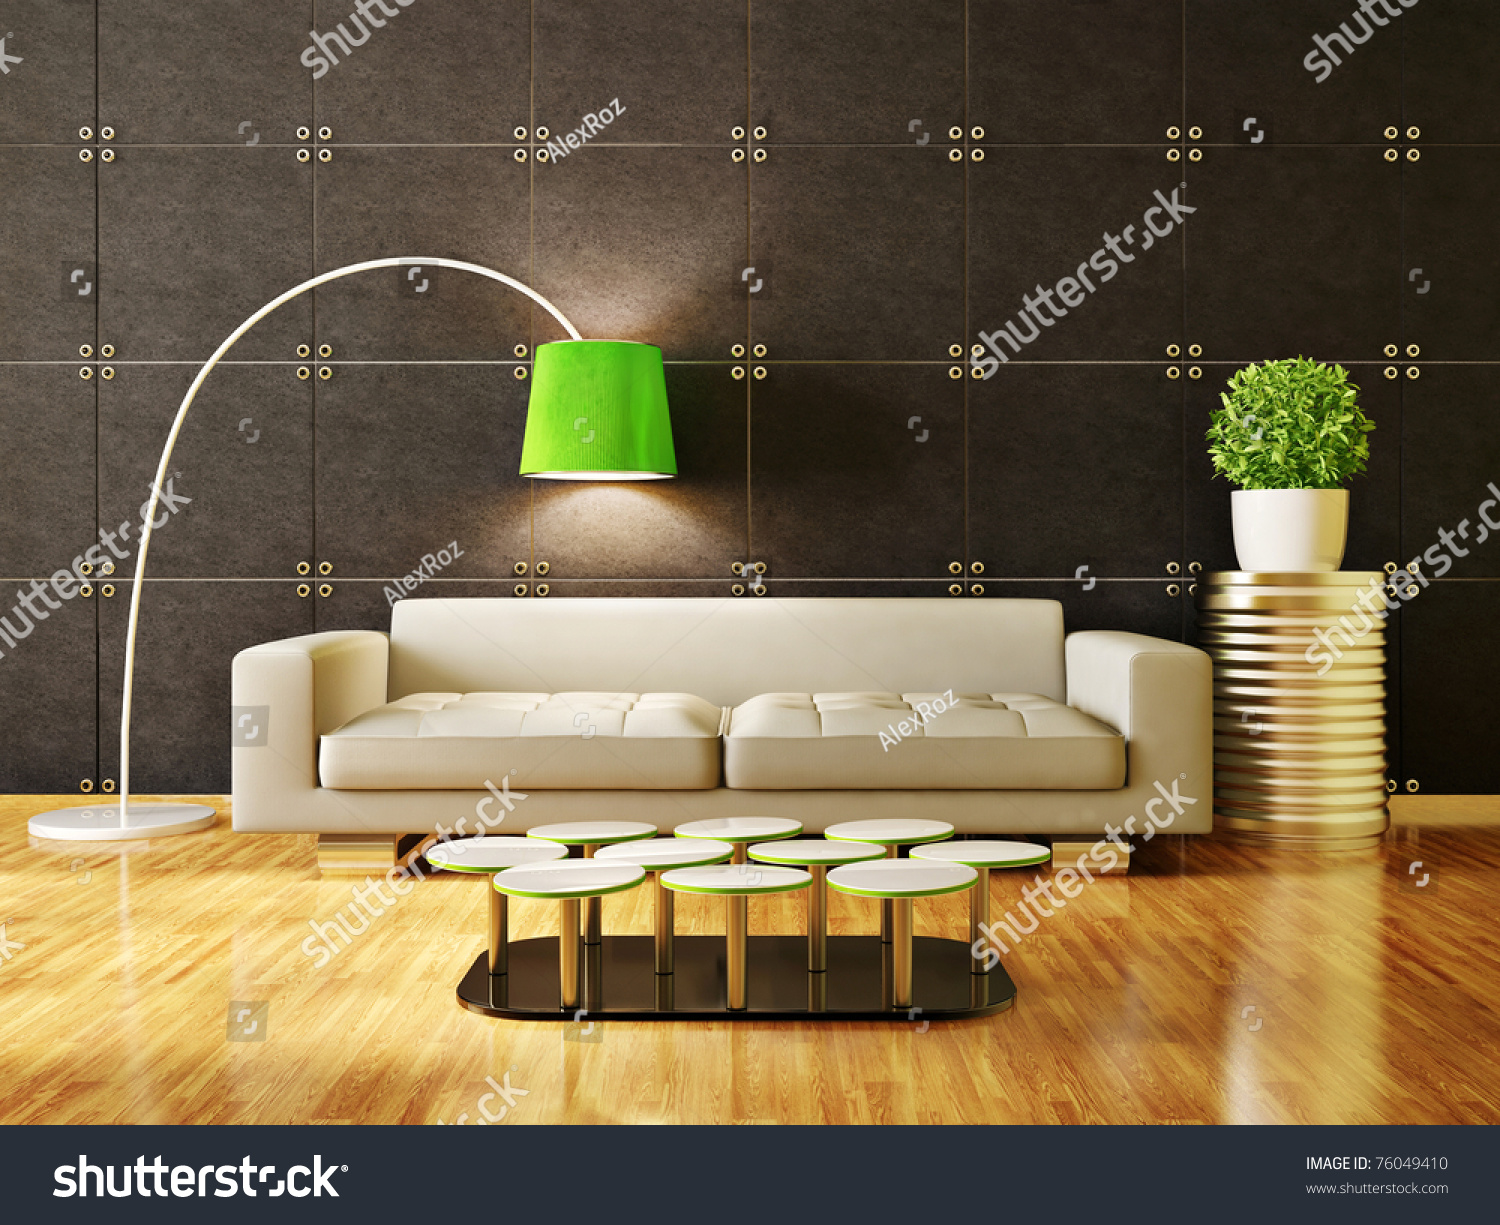 Modern interior room with nice furniture inside stock photo 76049410 shutterstock - Nice interior pic ...